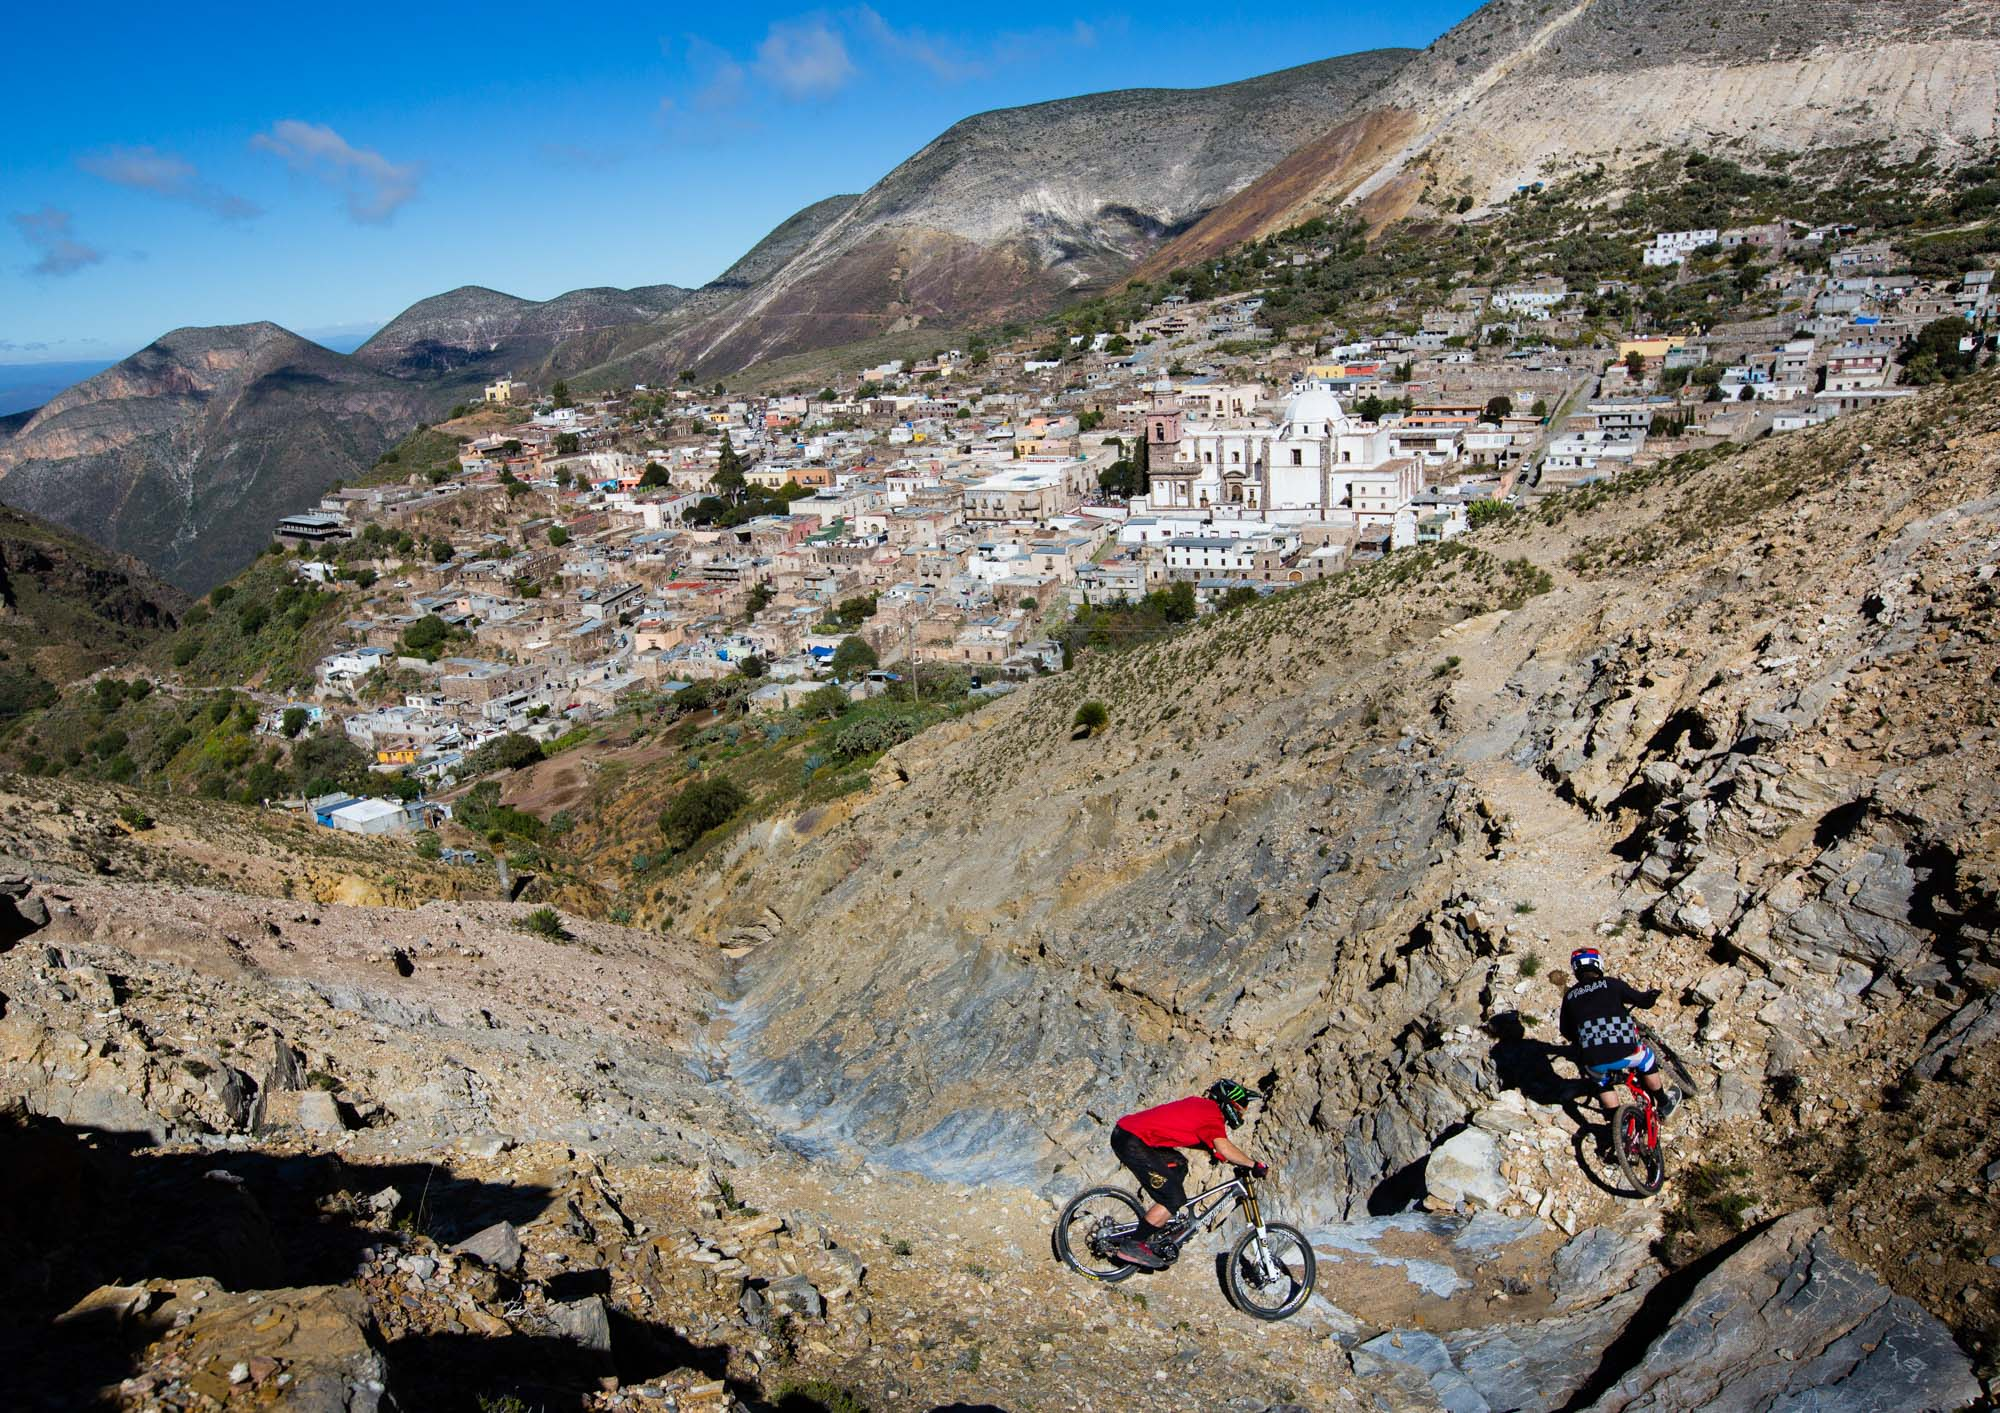 Mountain Bike in Mexico | Outdoor Sports Photographer